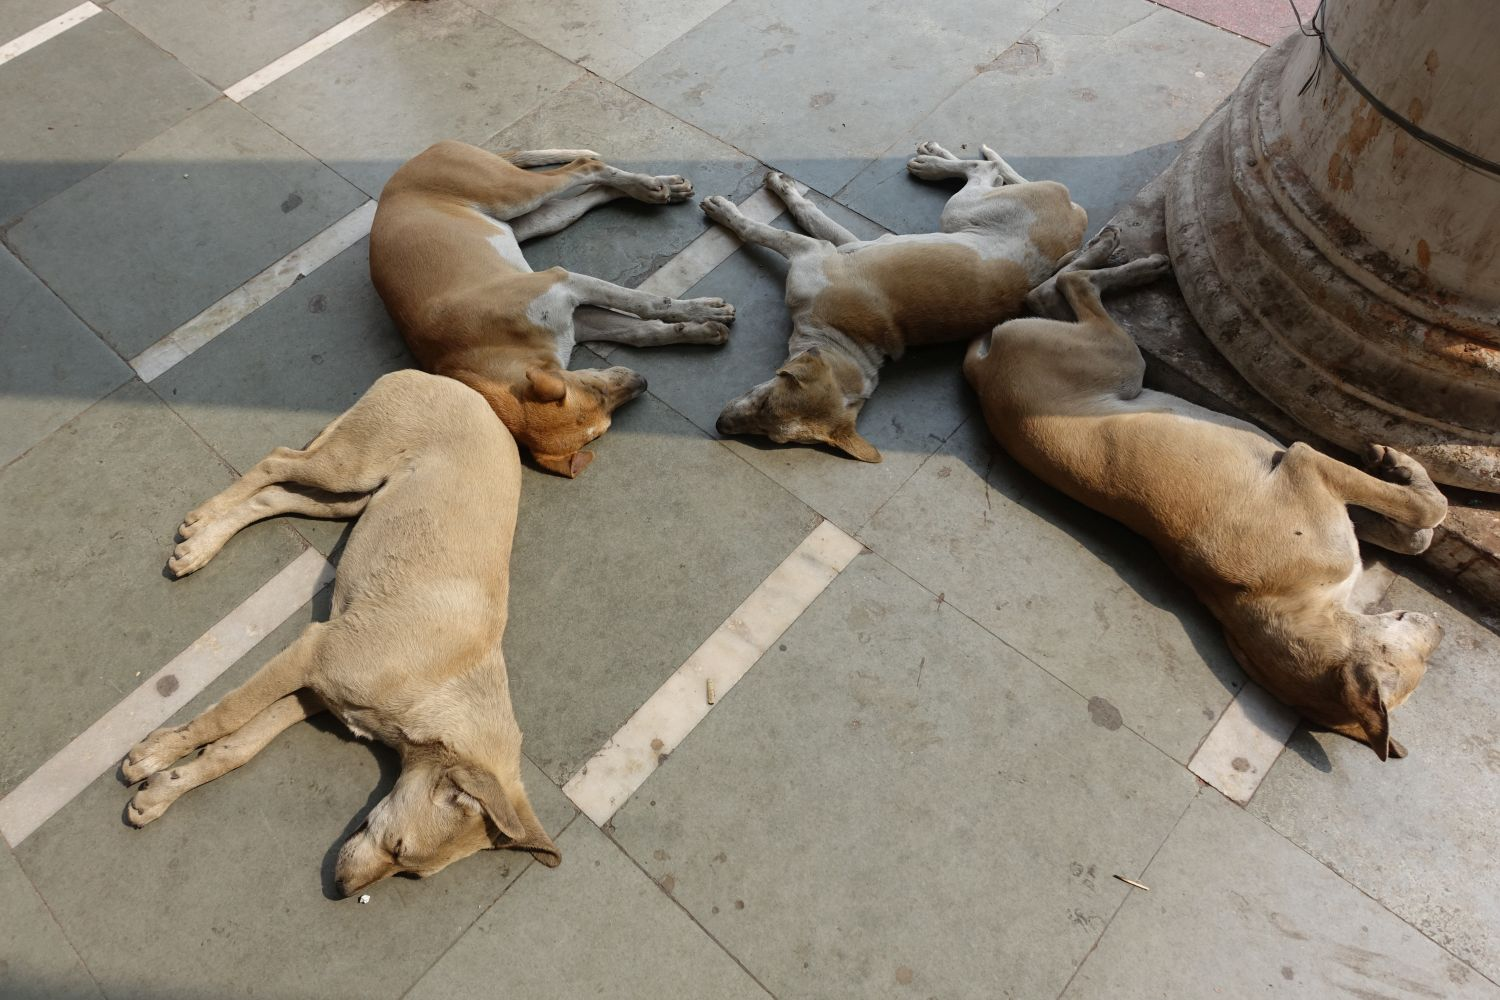 4 dogs at Connaught Place   New Delhi   India   photo sandrine cohen